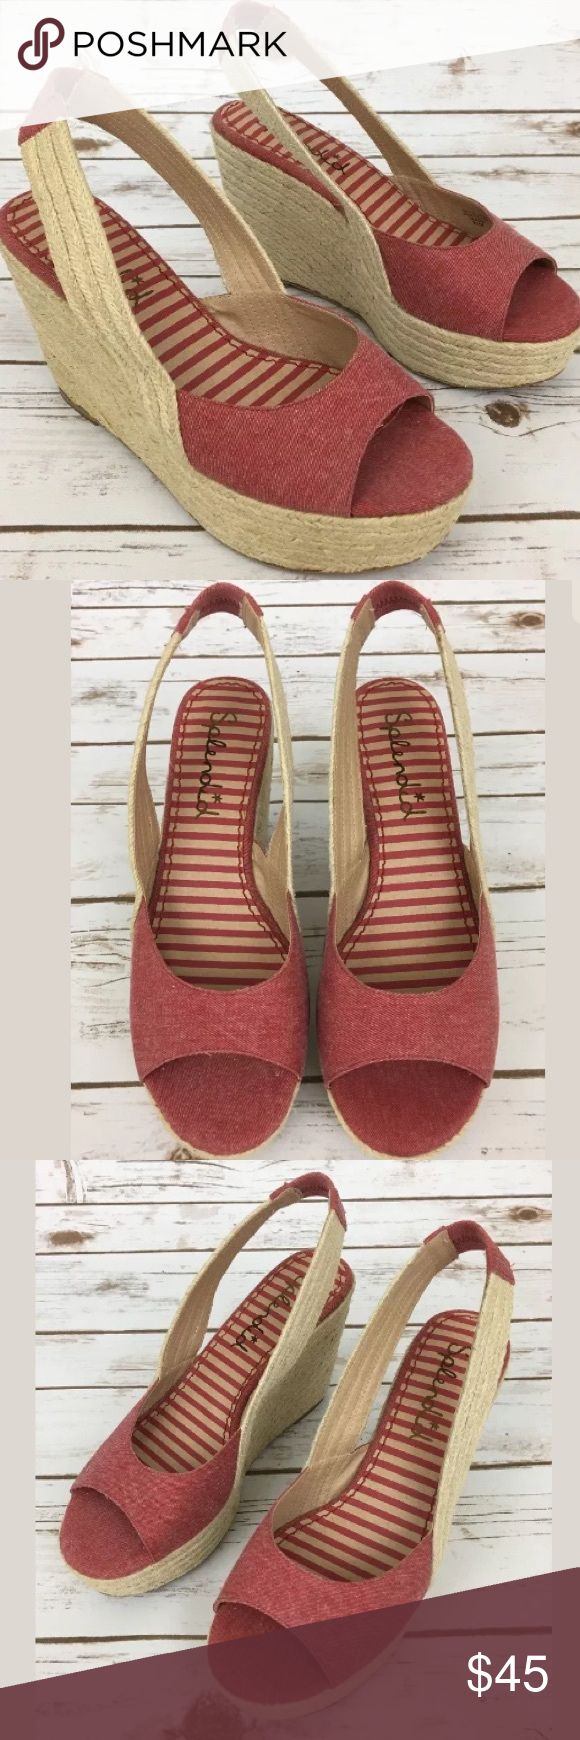 Red Espadrilles Wedge Heel Platform Shoes This red espadrille wedge is made/designed by Splendid! It has a minor stain on the right wedge-very unnoticeable! Message me for more information! Xx Splendid Shoes Espadrilles